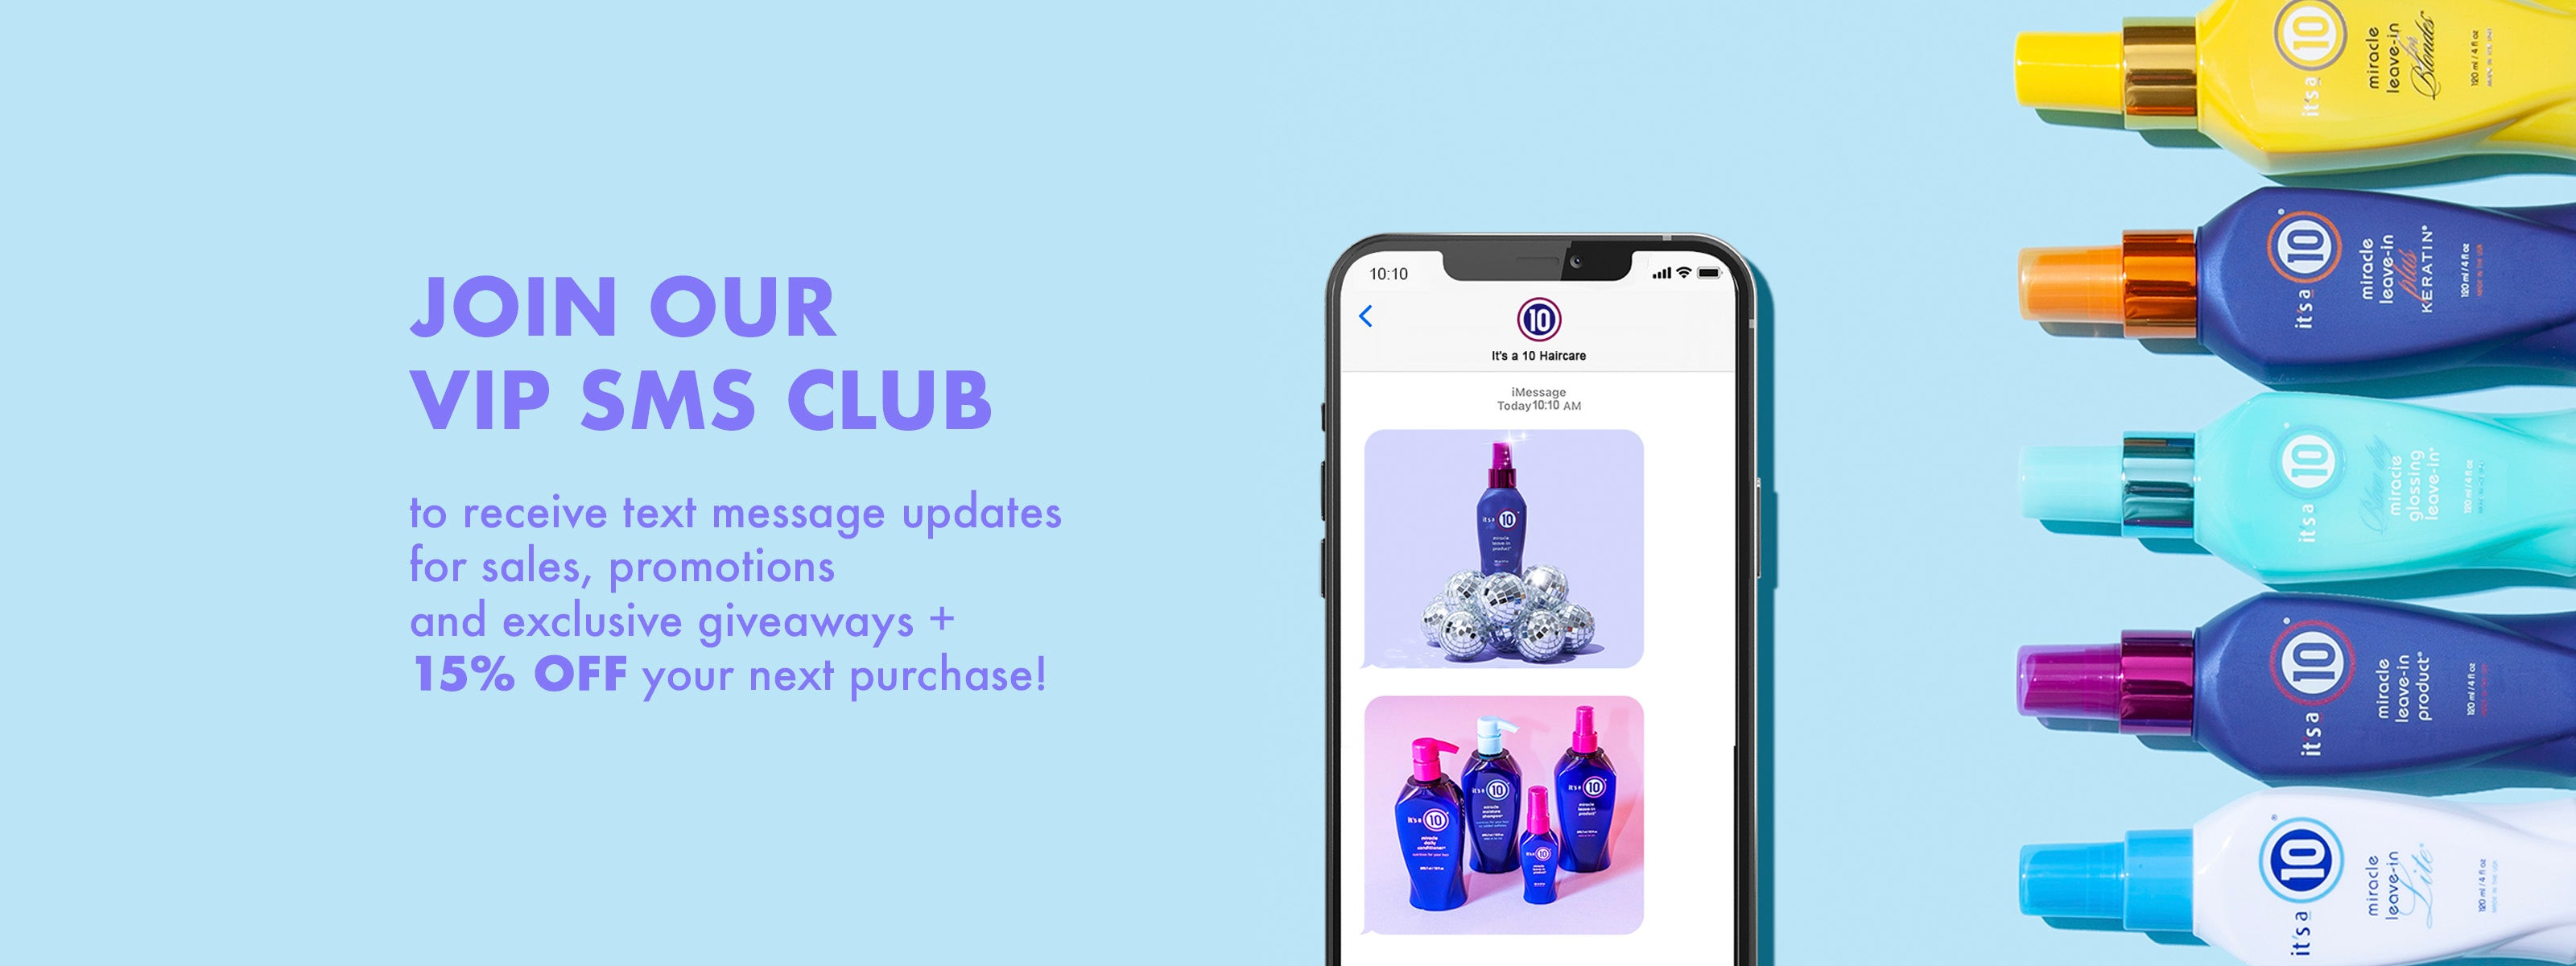 Join Our VIP SMS Club